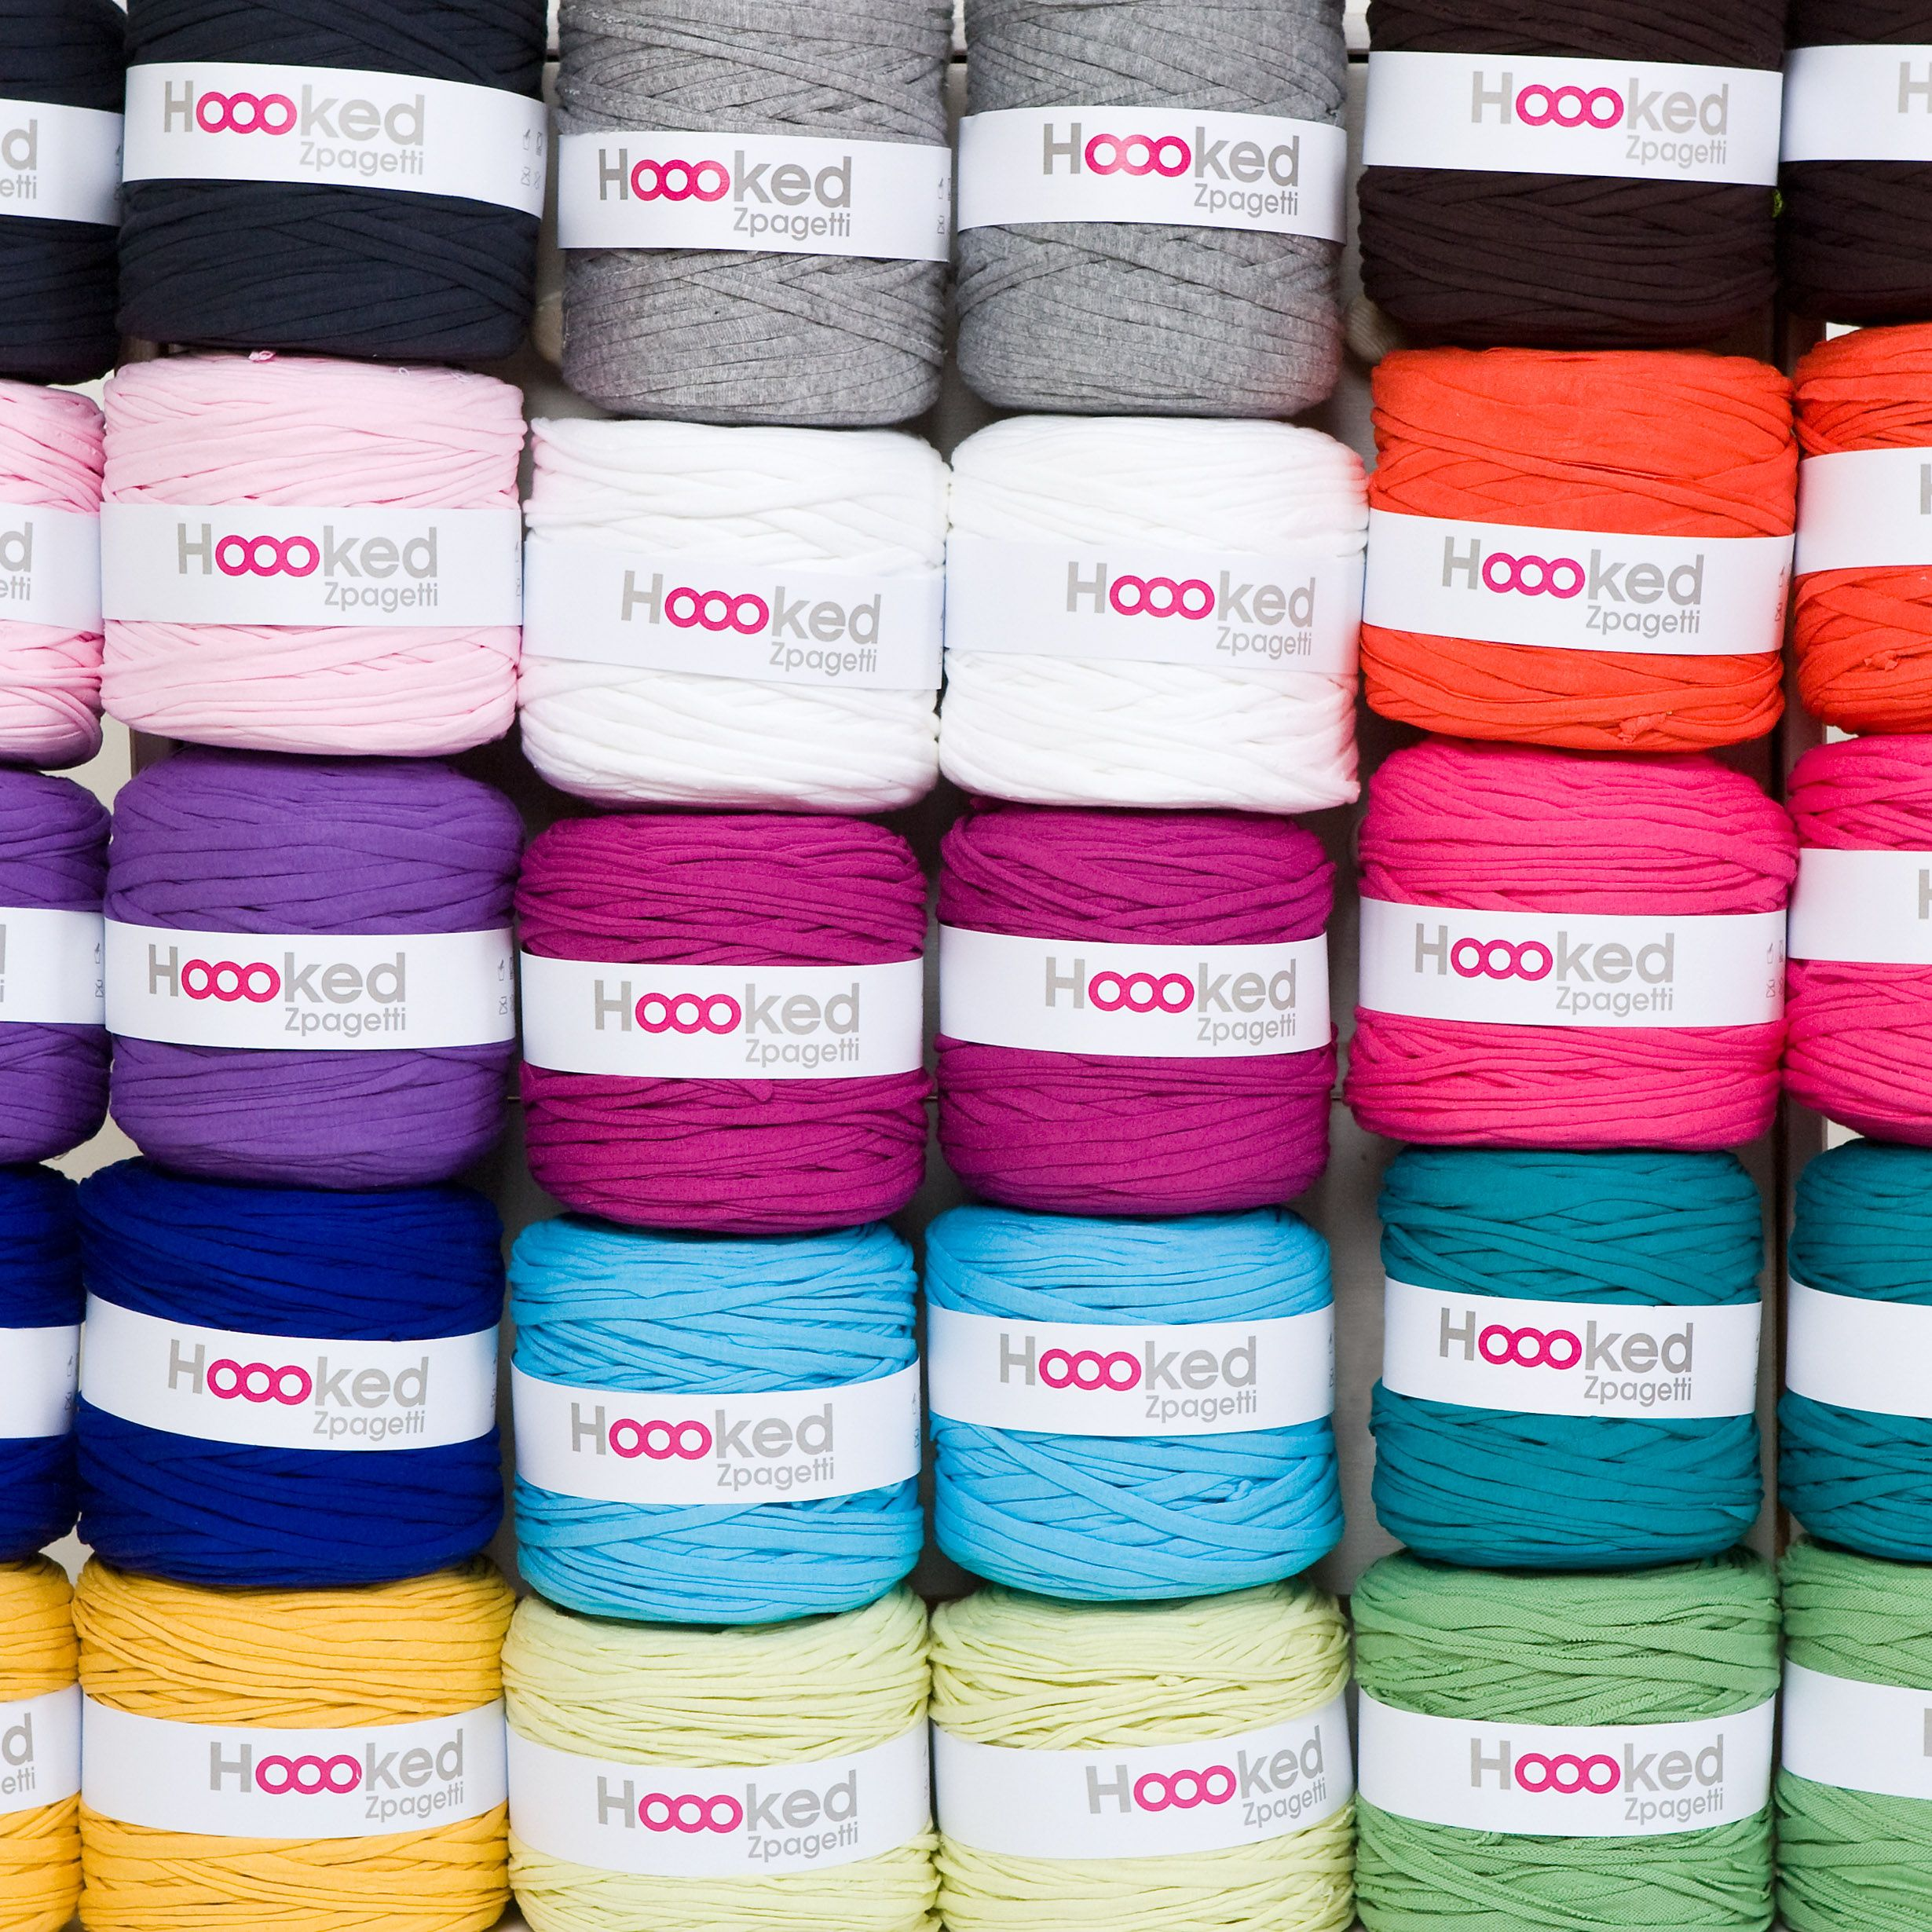 Our Colorfull Hoooked Zpagetti Yarns Available In Our Webshop Hoooked Zpagetti Hoooked Tuto Sac Crochet